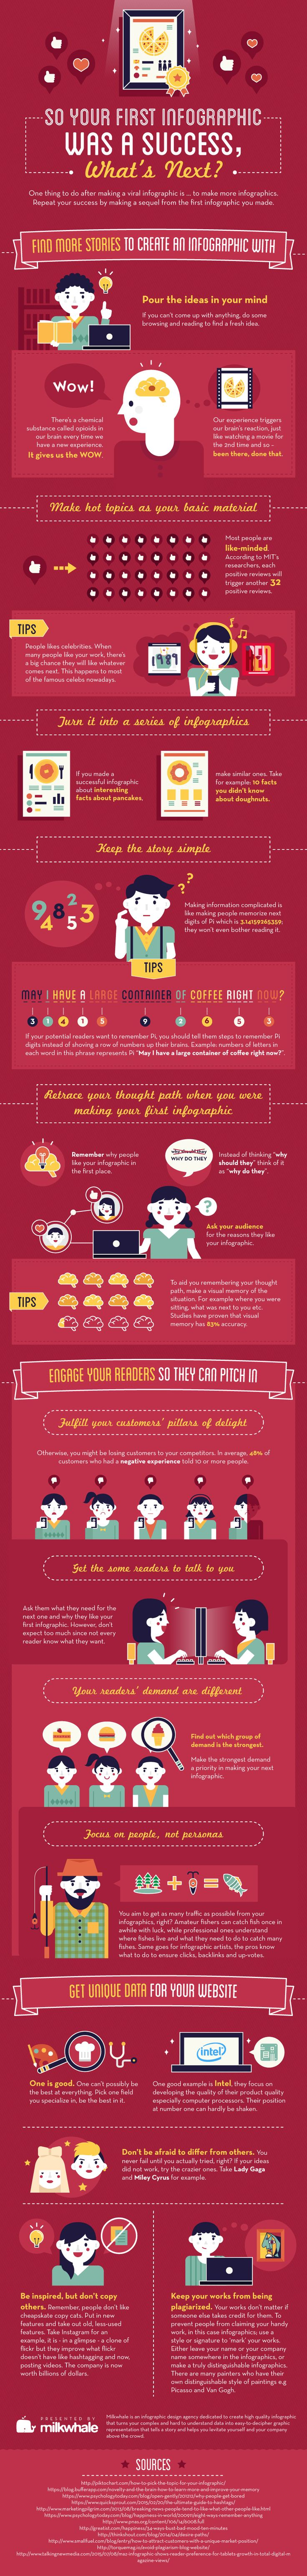 So Your First Infographic Was A Success, What's Next? - #infographic